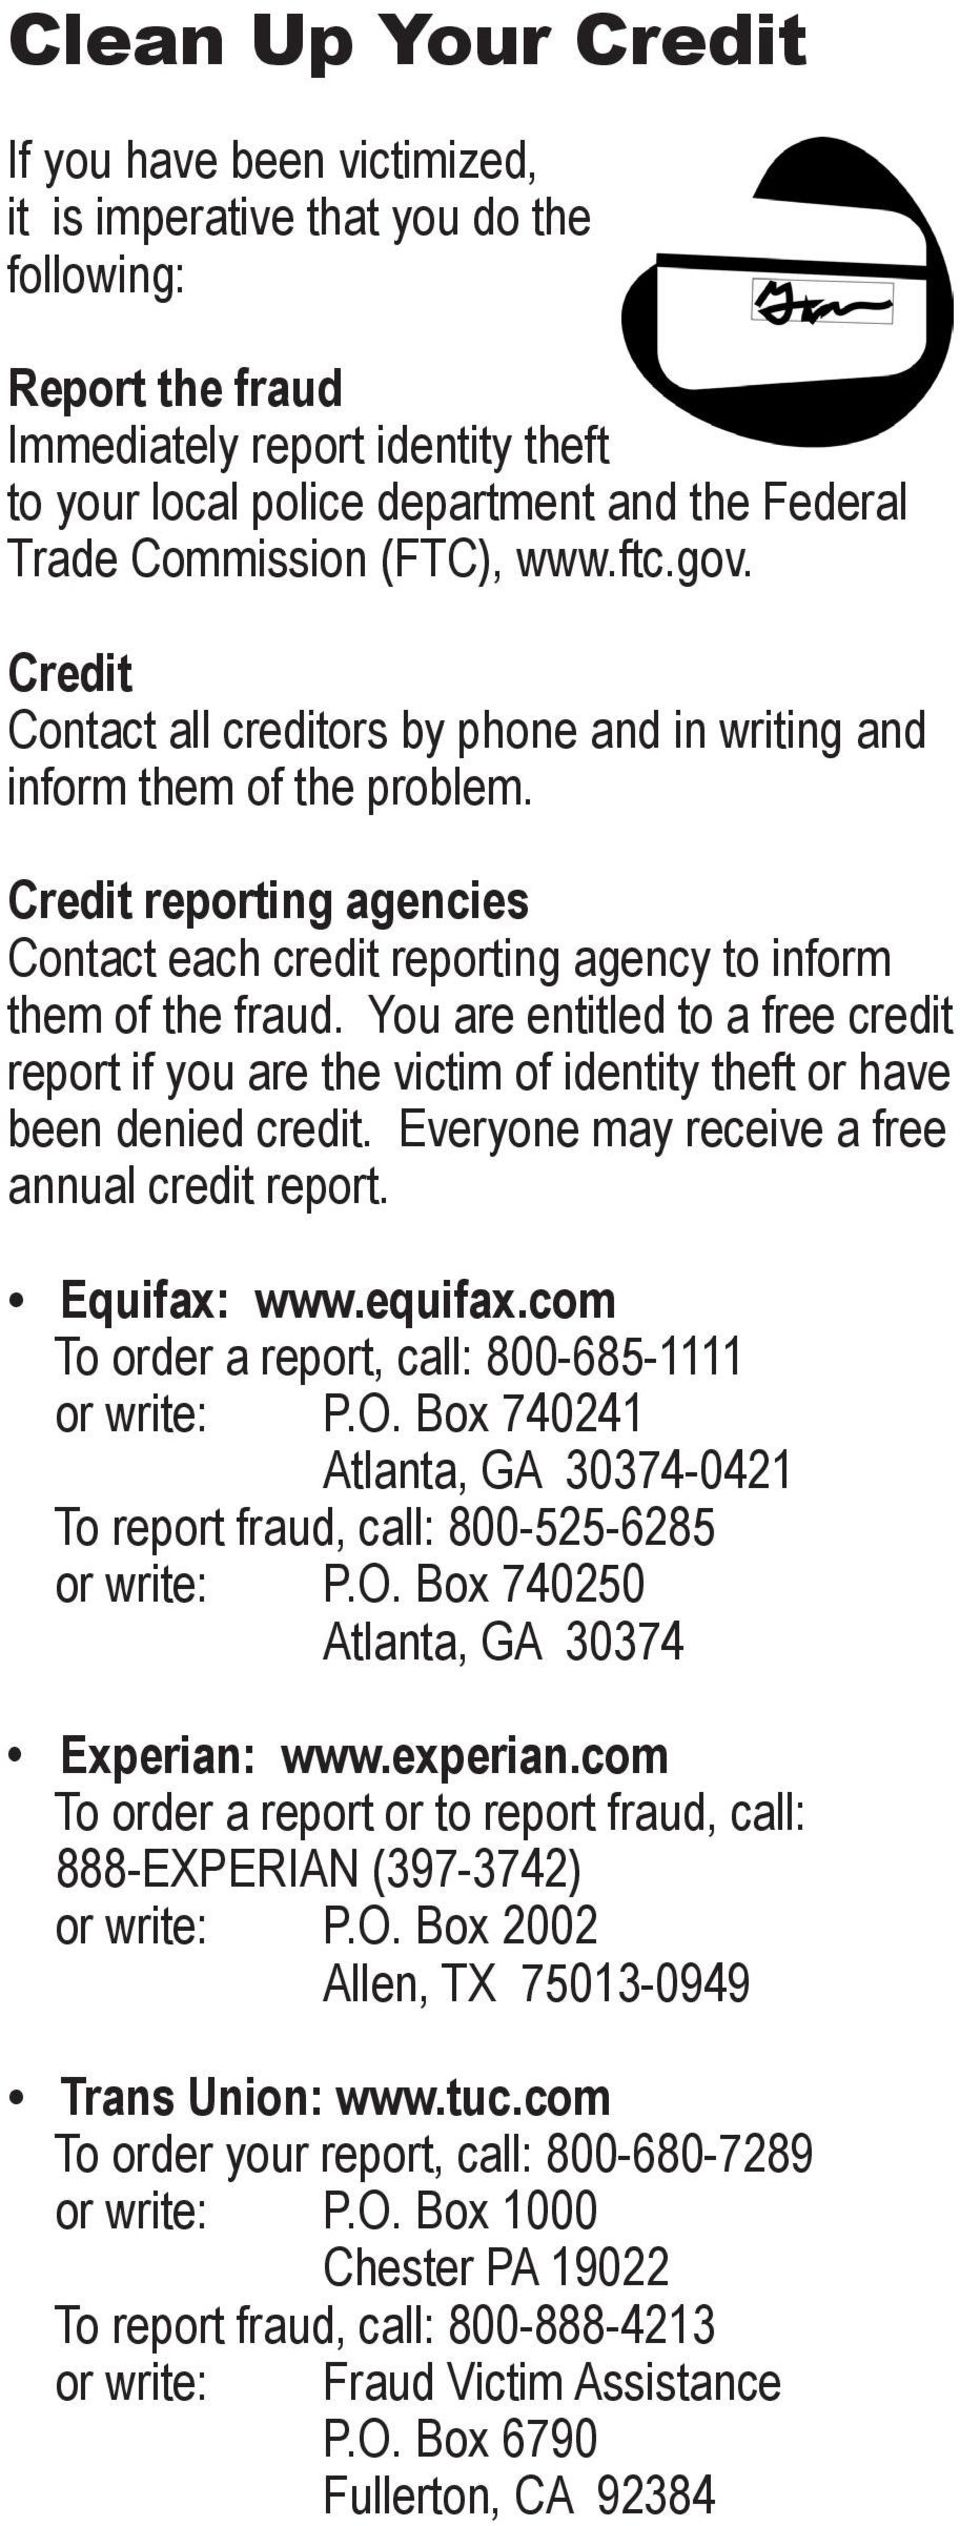 Credit reporting agencies Contact each credit reporting agency to inform them of the fraud. You are entitled to a free credit report if you are the victim of identity theft or have been denied credit.